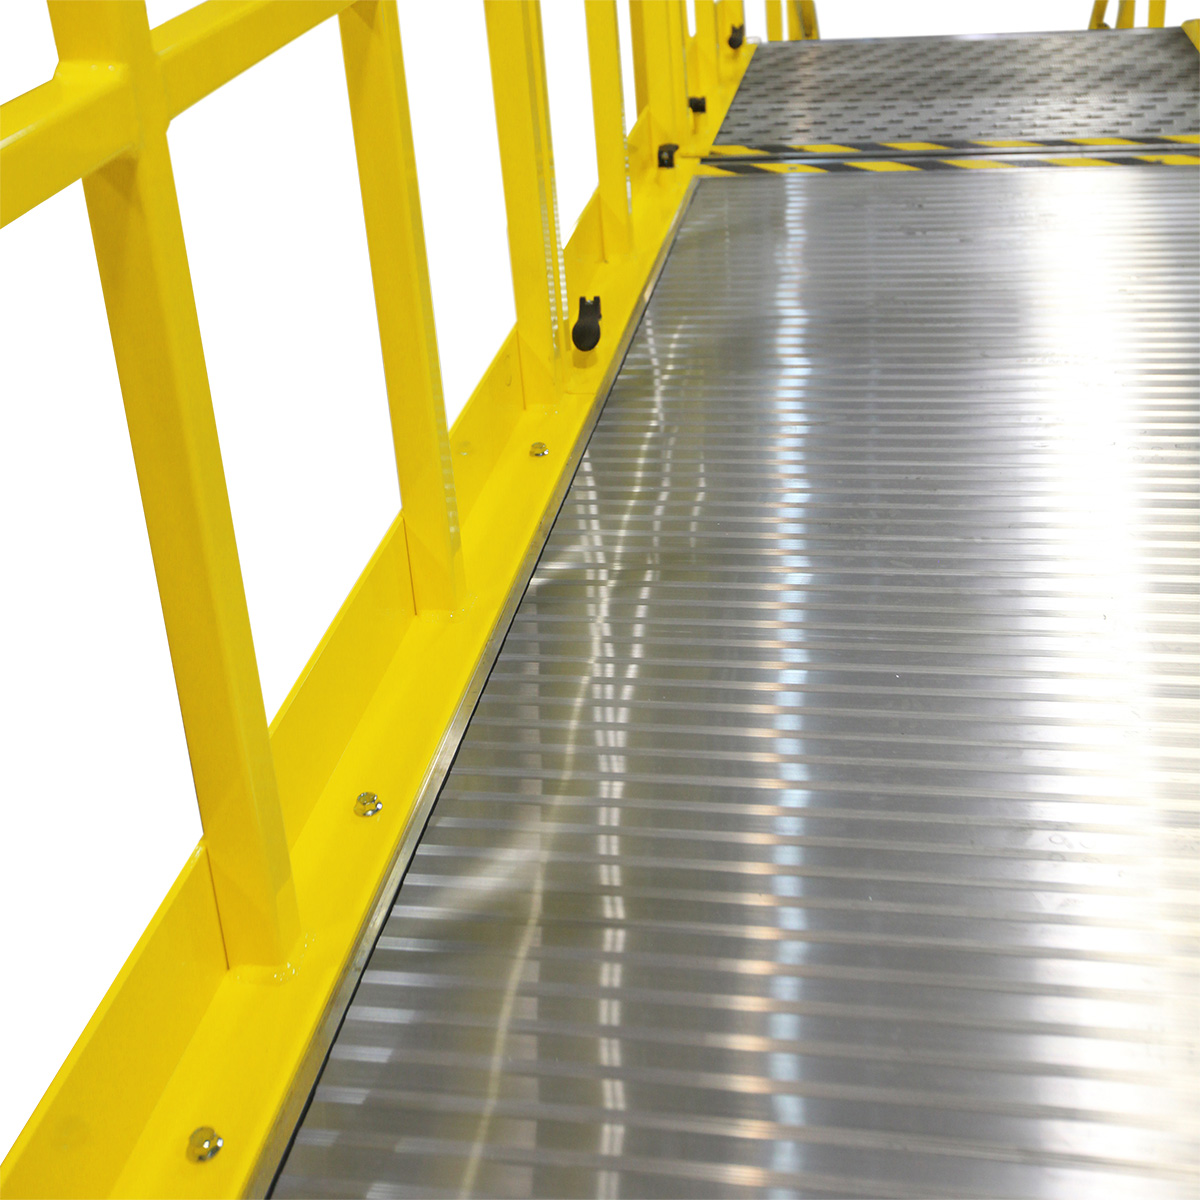 OSHA compliant, portable aluminum work platforms with options for aggressive tread and high-traction work surfaces for improved ergonomics and comfort.